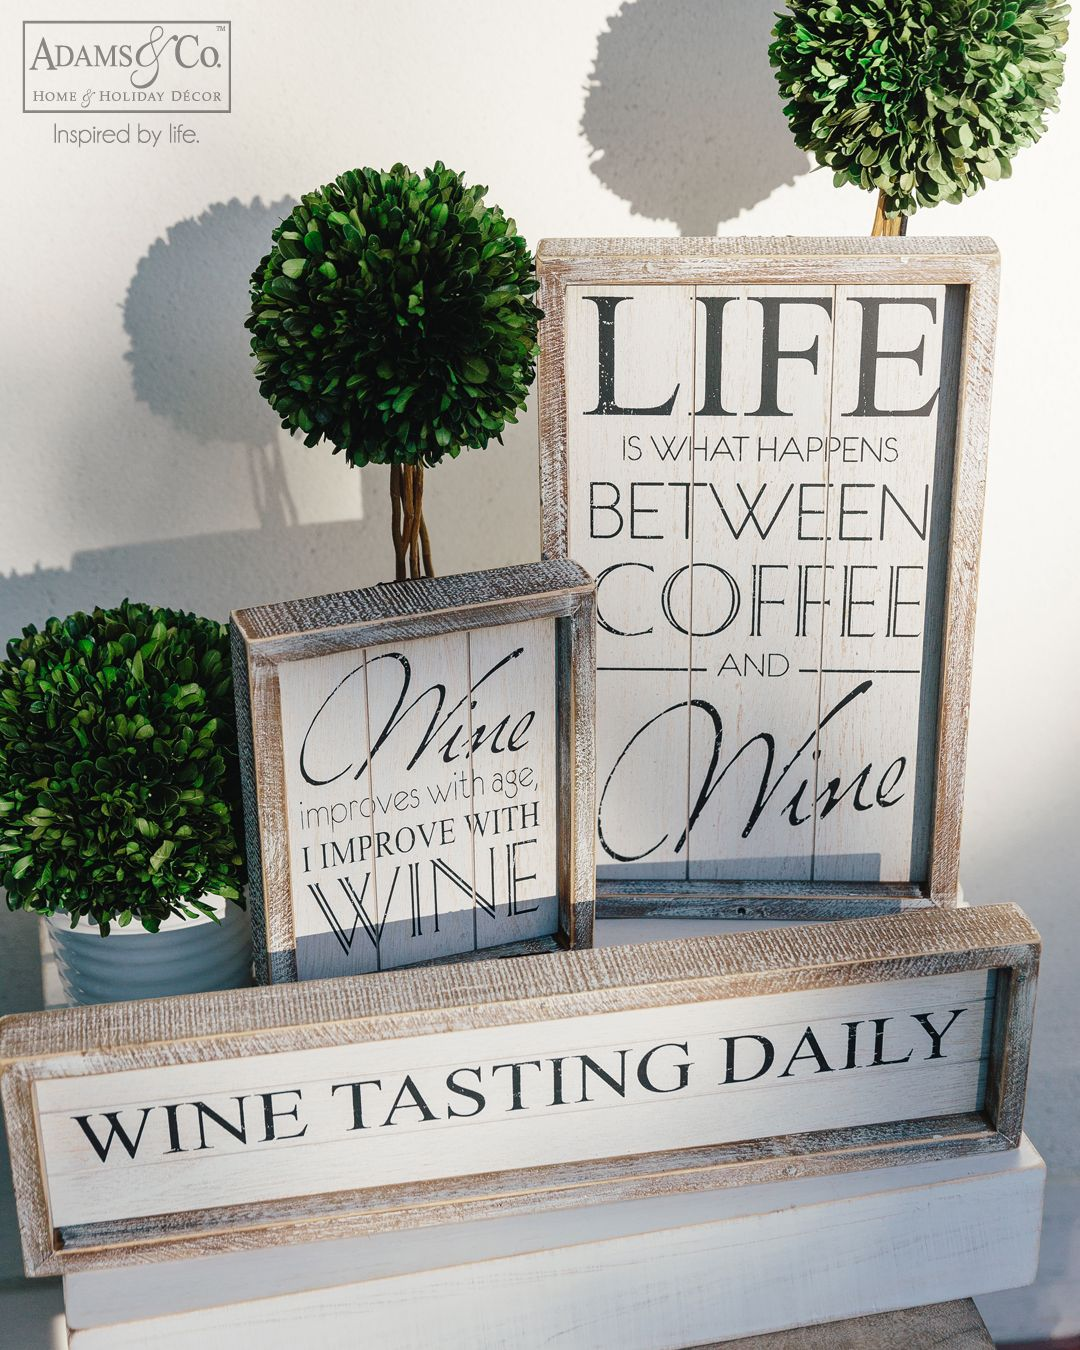 Best Wine Collection Adams Co Adamsandco Inspiredbylife This Month